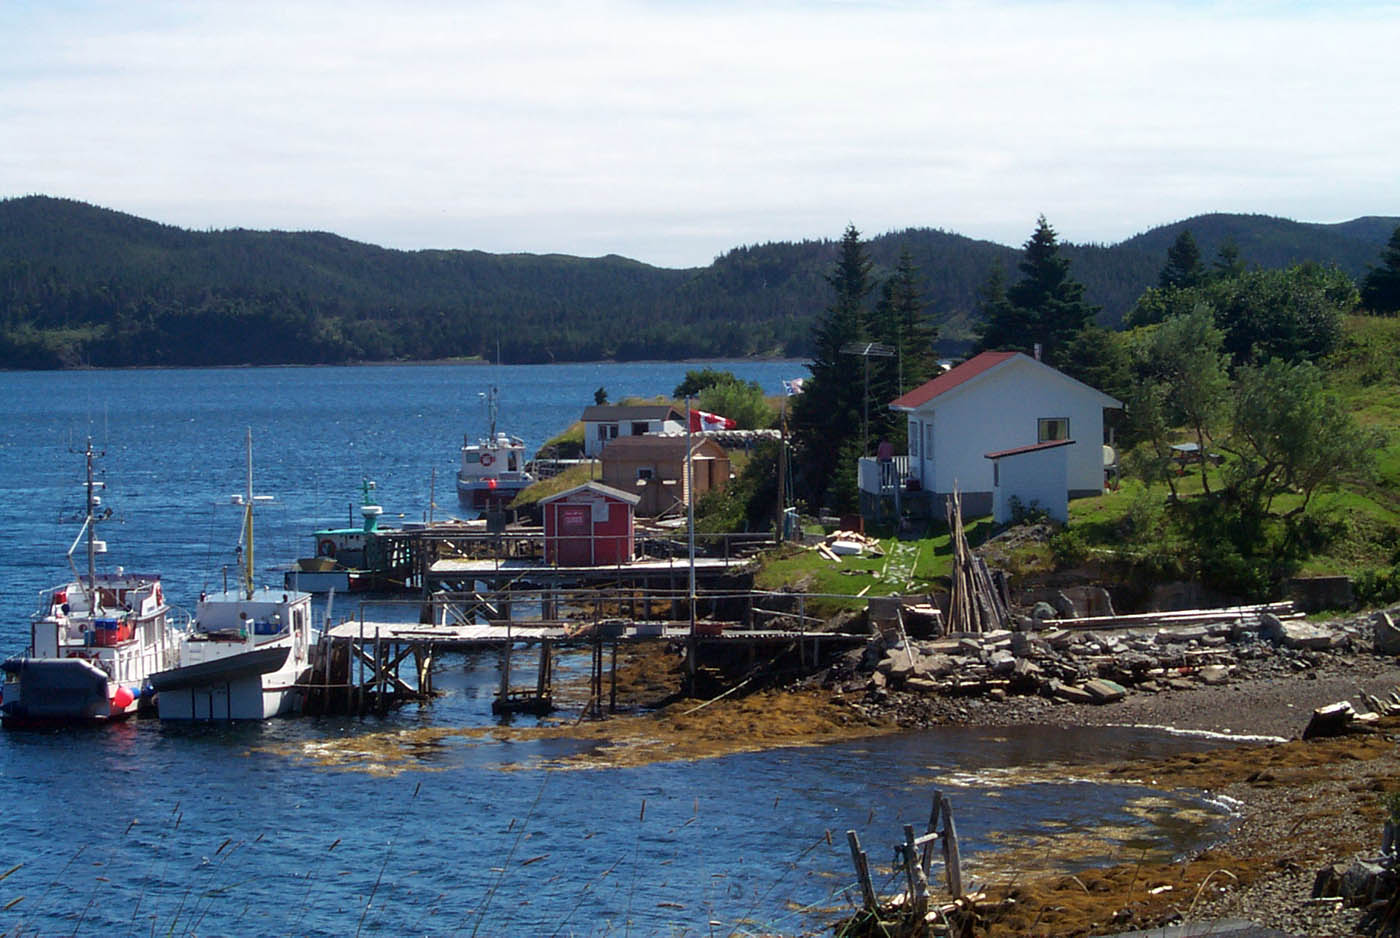 [Photo: Kingwell coastal house, dock, boats and water]